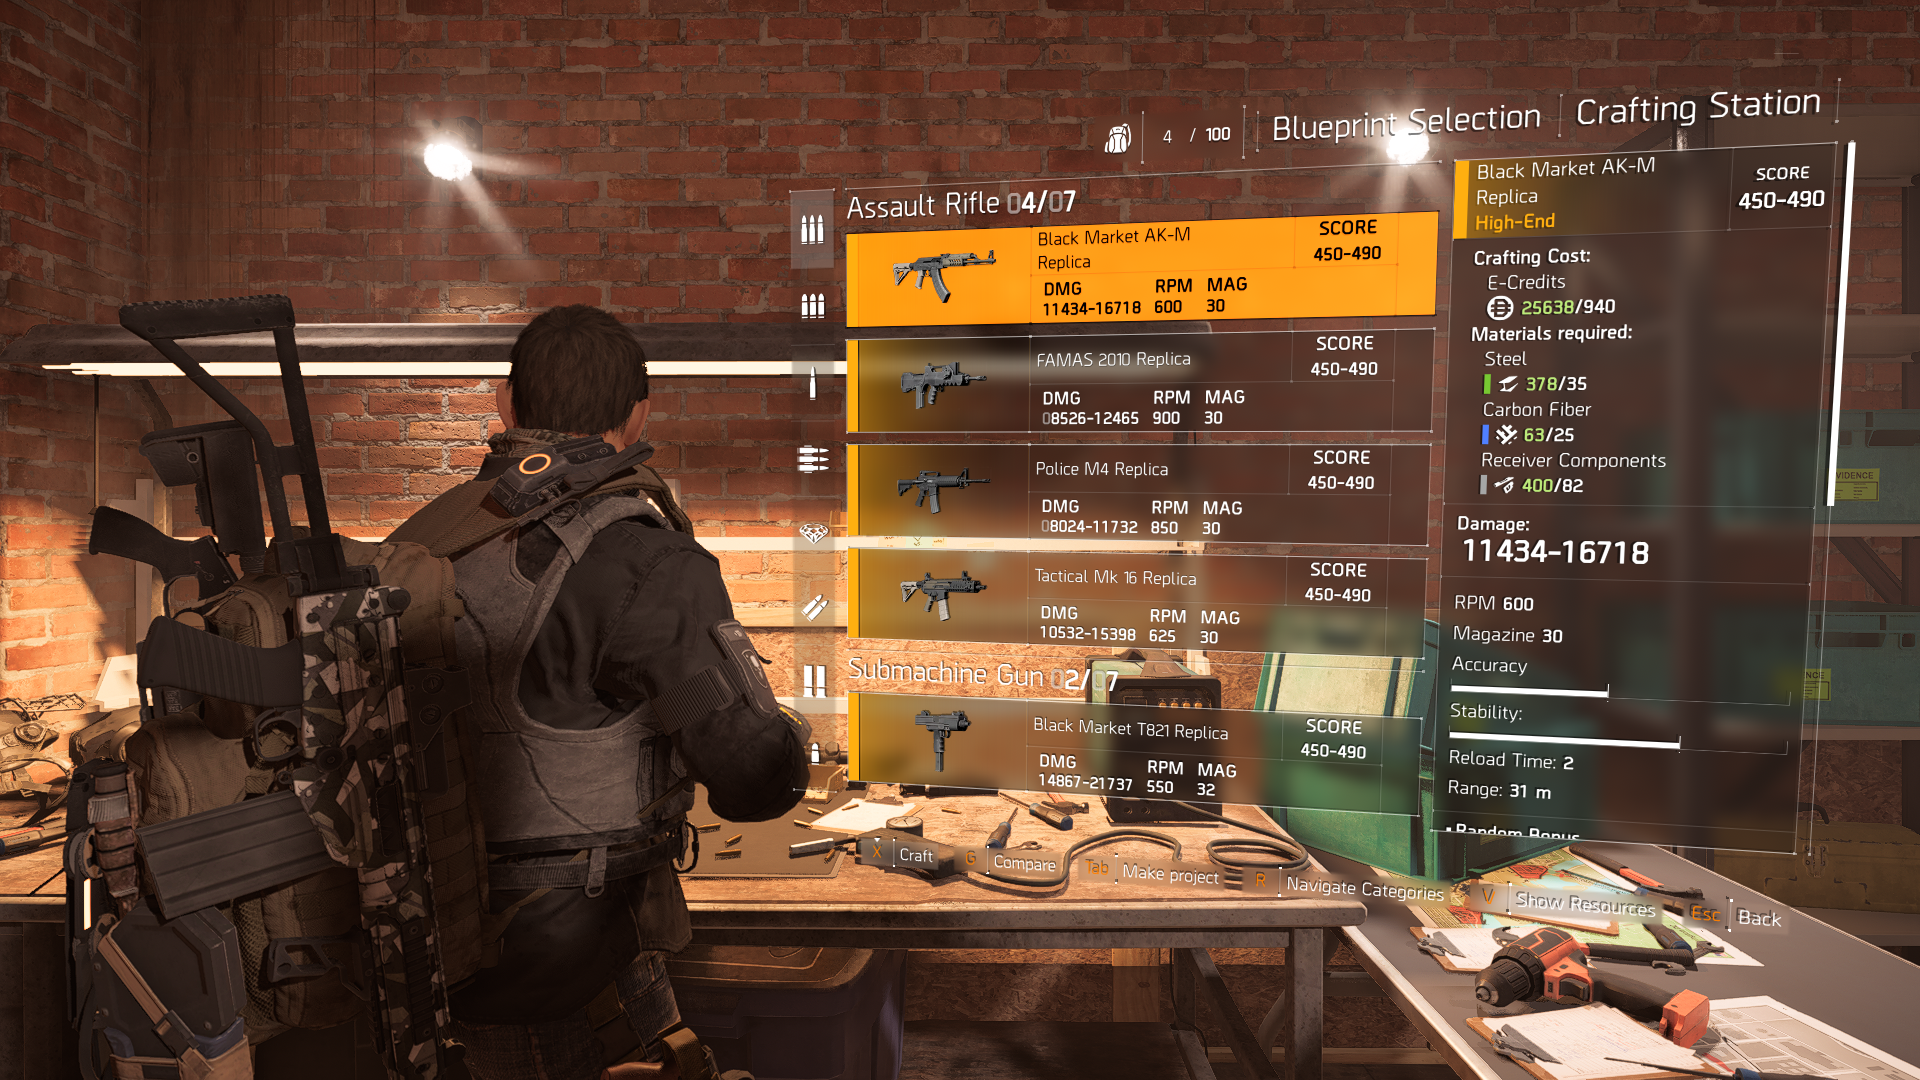 Dive Deep Into The Divison 2's End-Game! - Blogs - Gamepedia